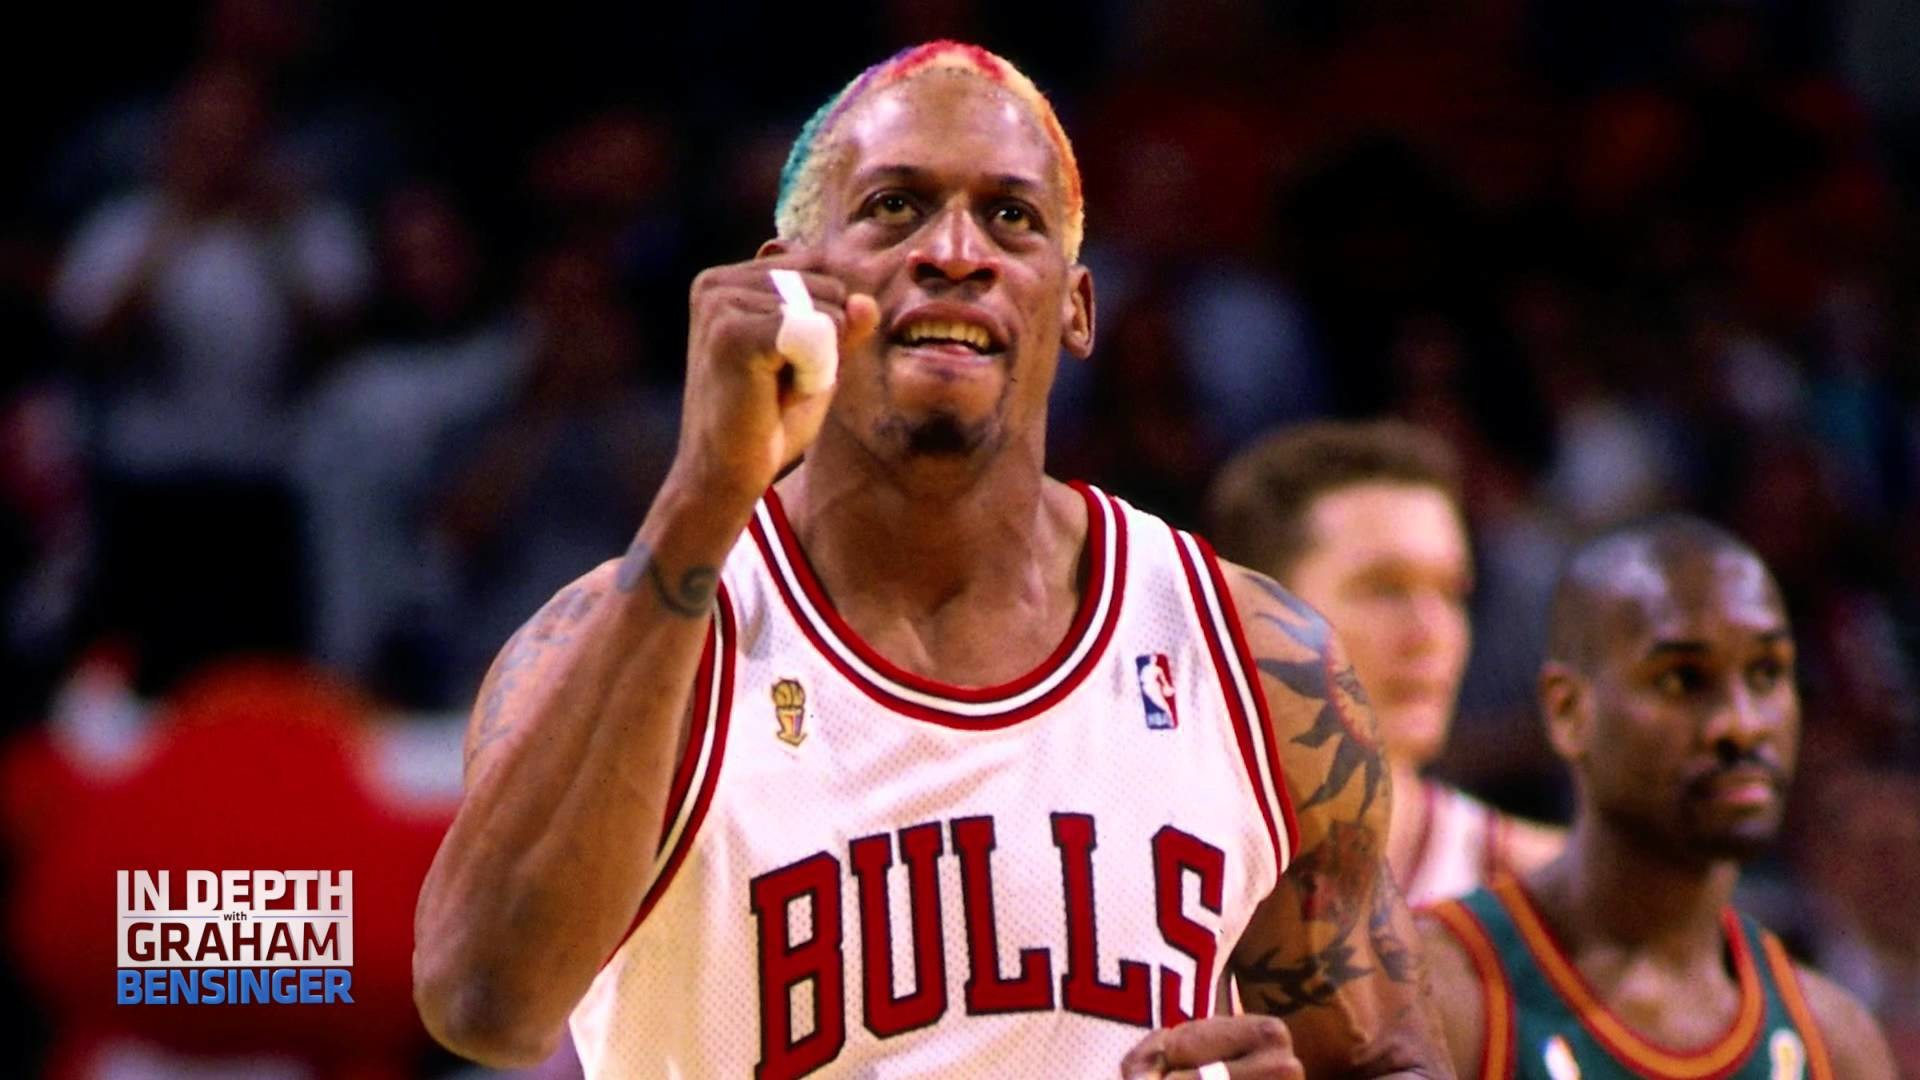 Dennis Rodman Wallpapers High Resolution and Quality Download